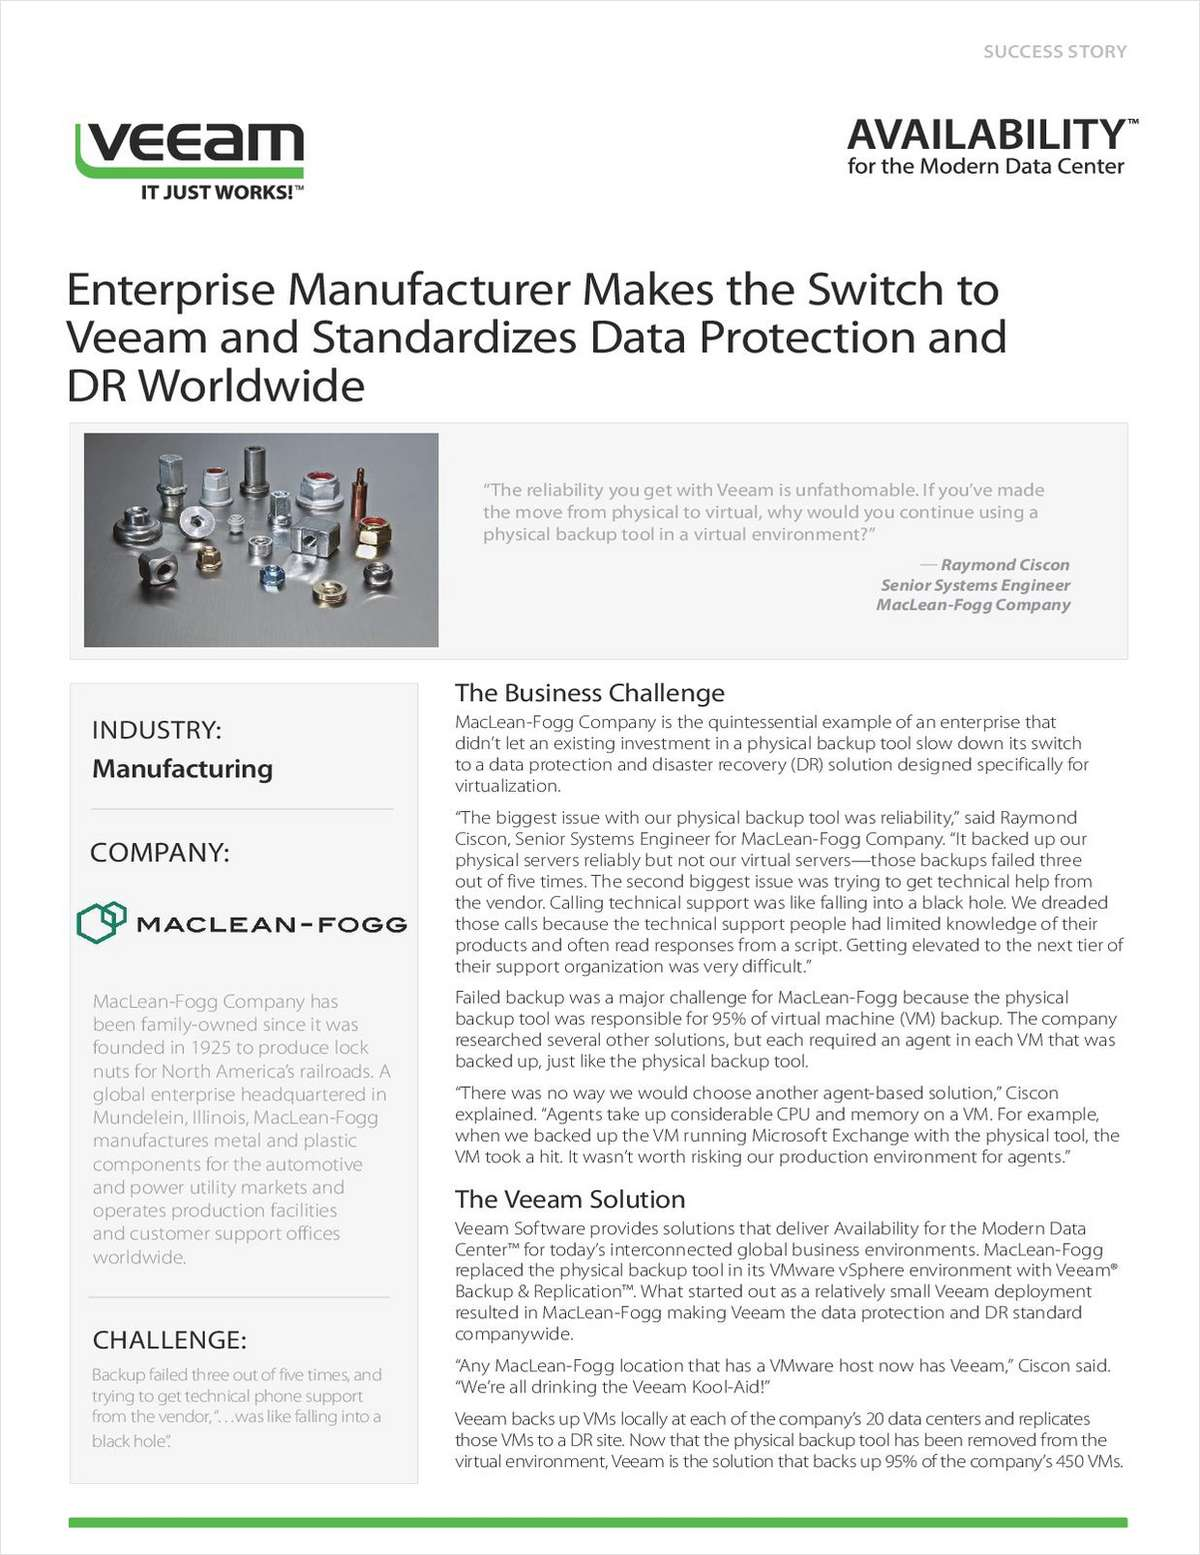 Enterprise Manufacturer Makes the Switch to Veeam and Standardizes Data Protection and DR Worldwide